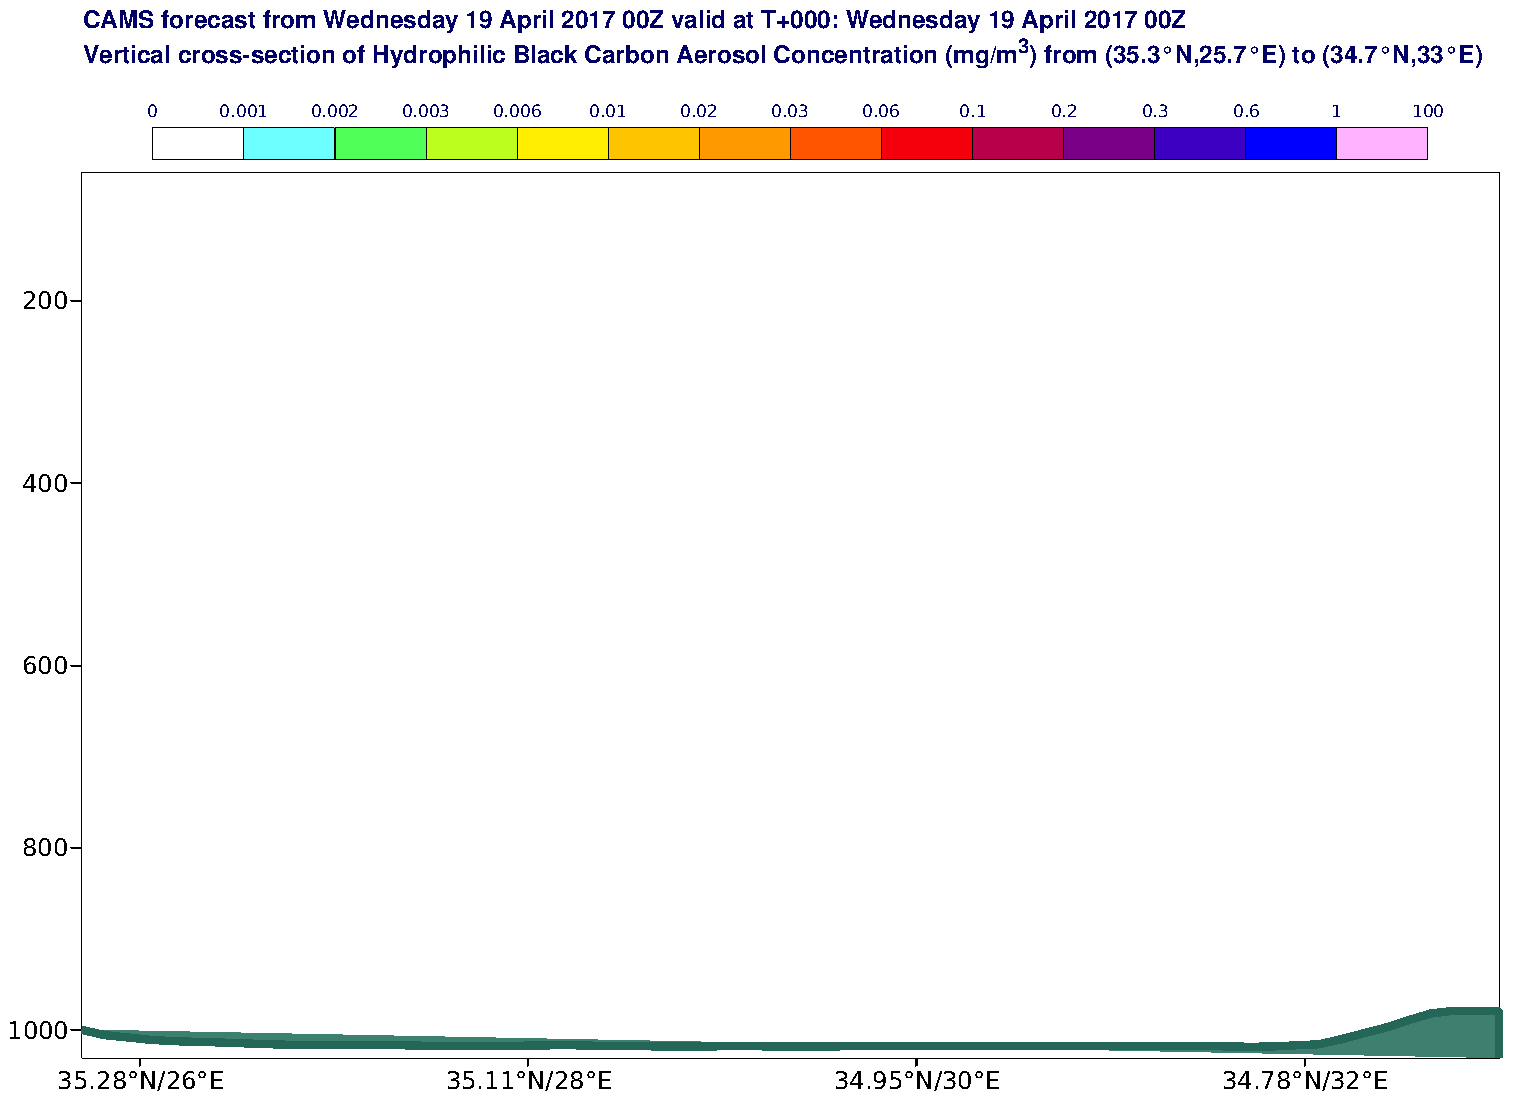 Vertical cross-section of Hydrophilic Black Carbon Aerosol Concentration (mg/m3) valid at T0 - 2017-04-19 00:00